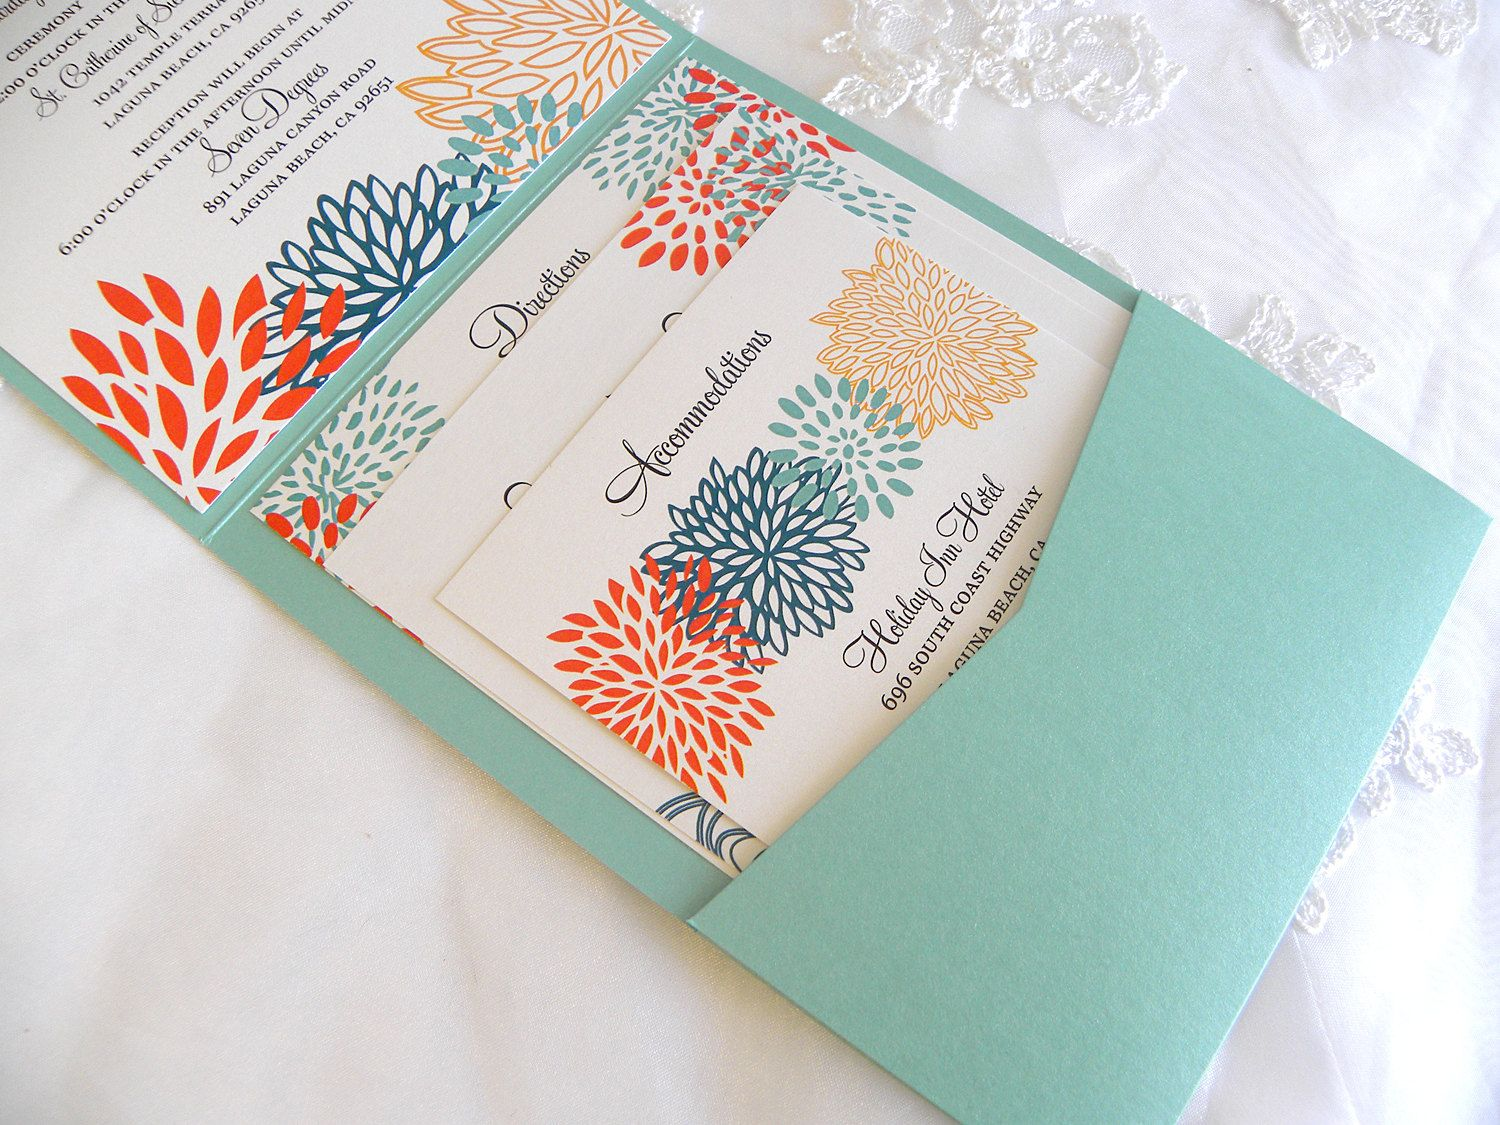 Wedding Invitations Handmade: Obsessed! Aqua Teal Orange And Yellow Floral Pocket